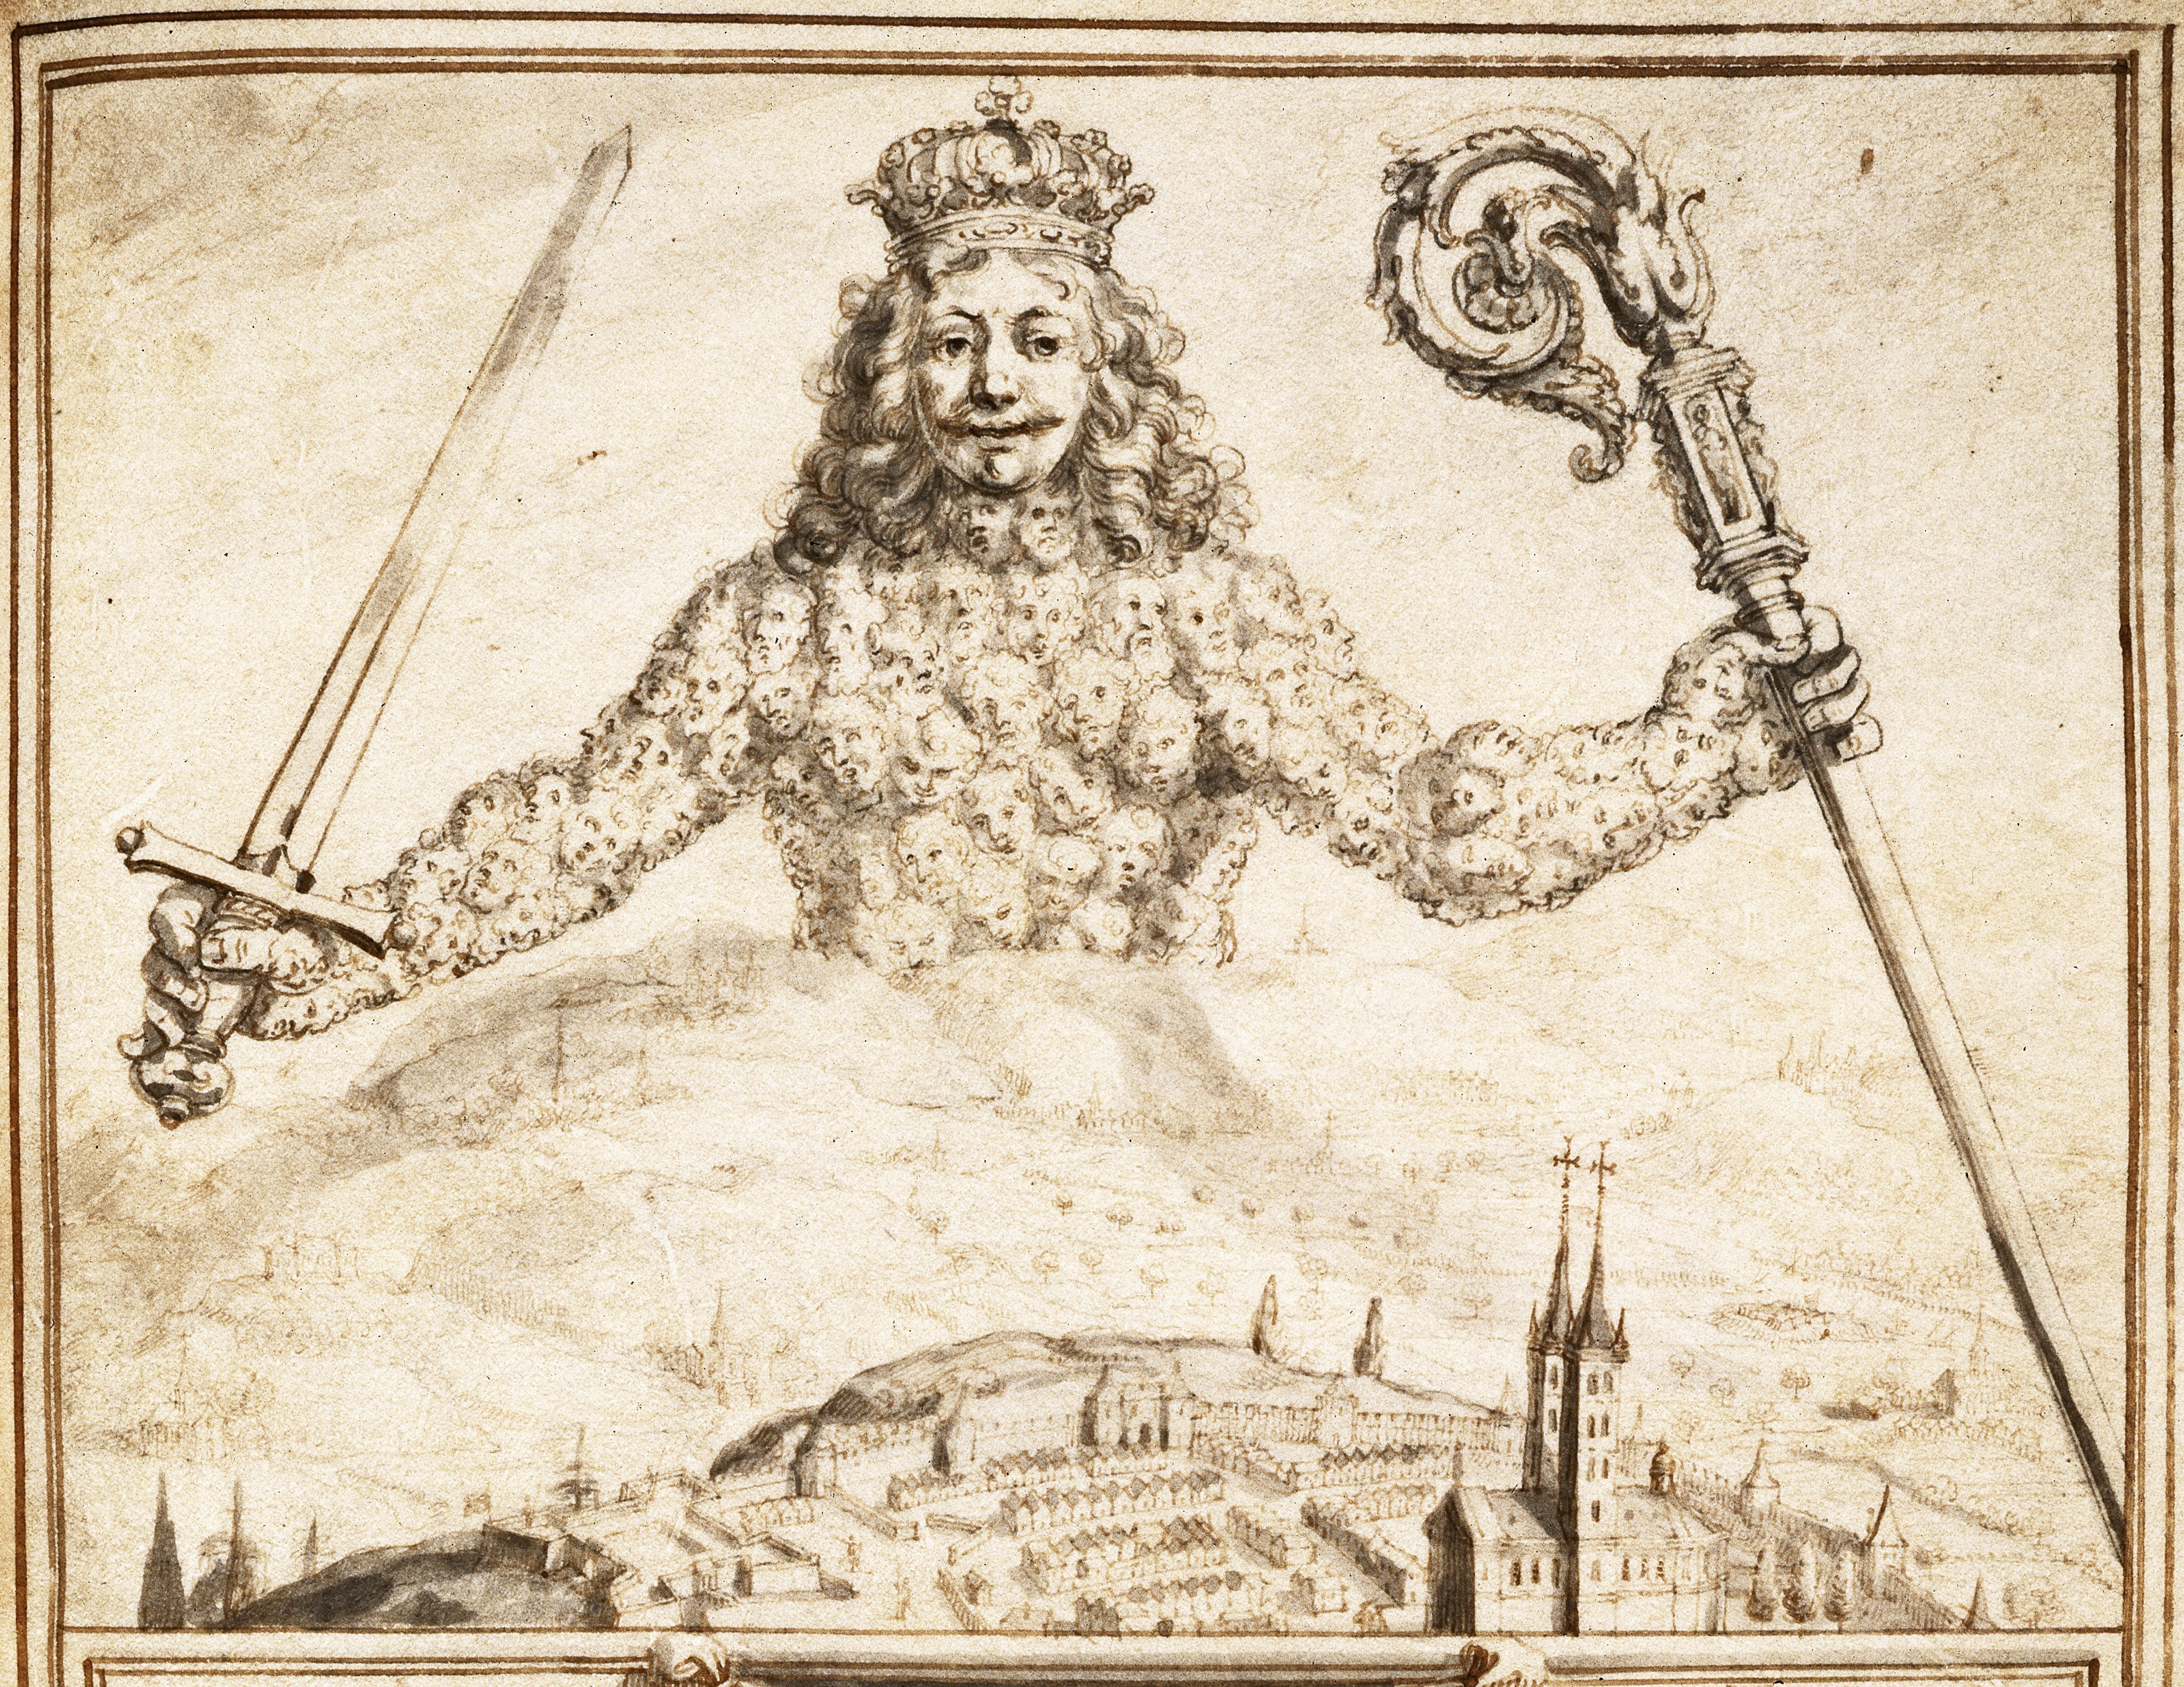 Figure 3. Drawing of frontispiece of  Leviathan, 1651. Copyright: The British Library Board. Egerton 1910 F1